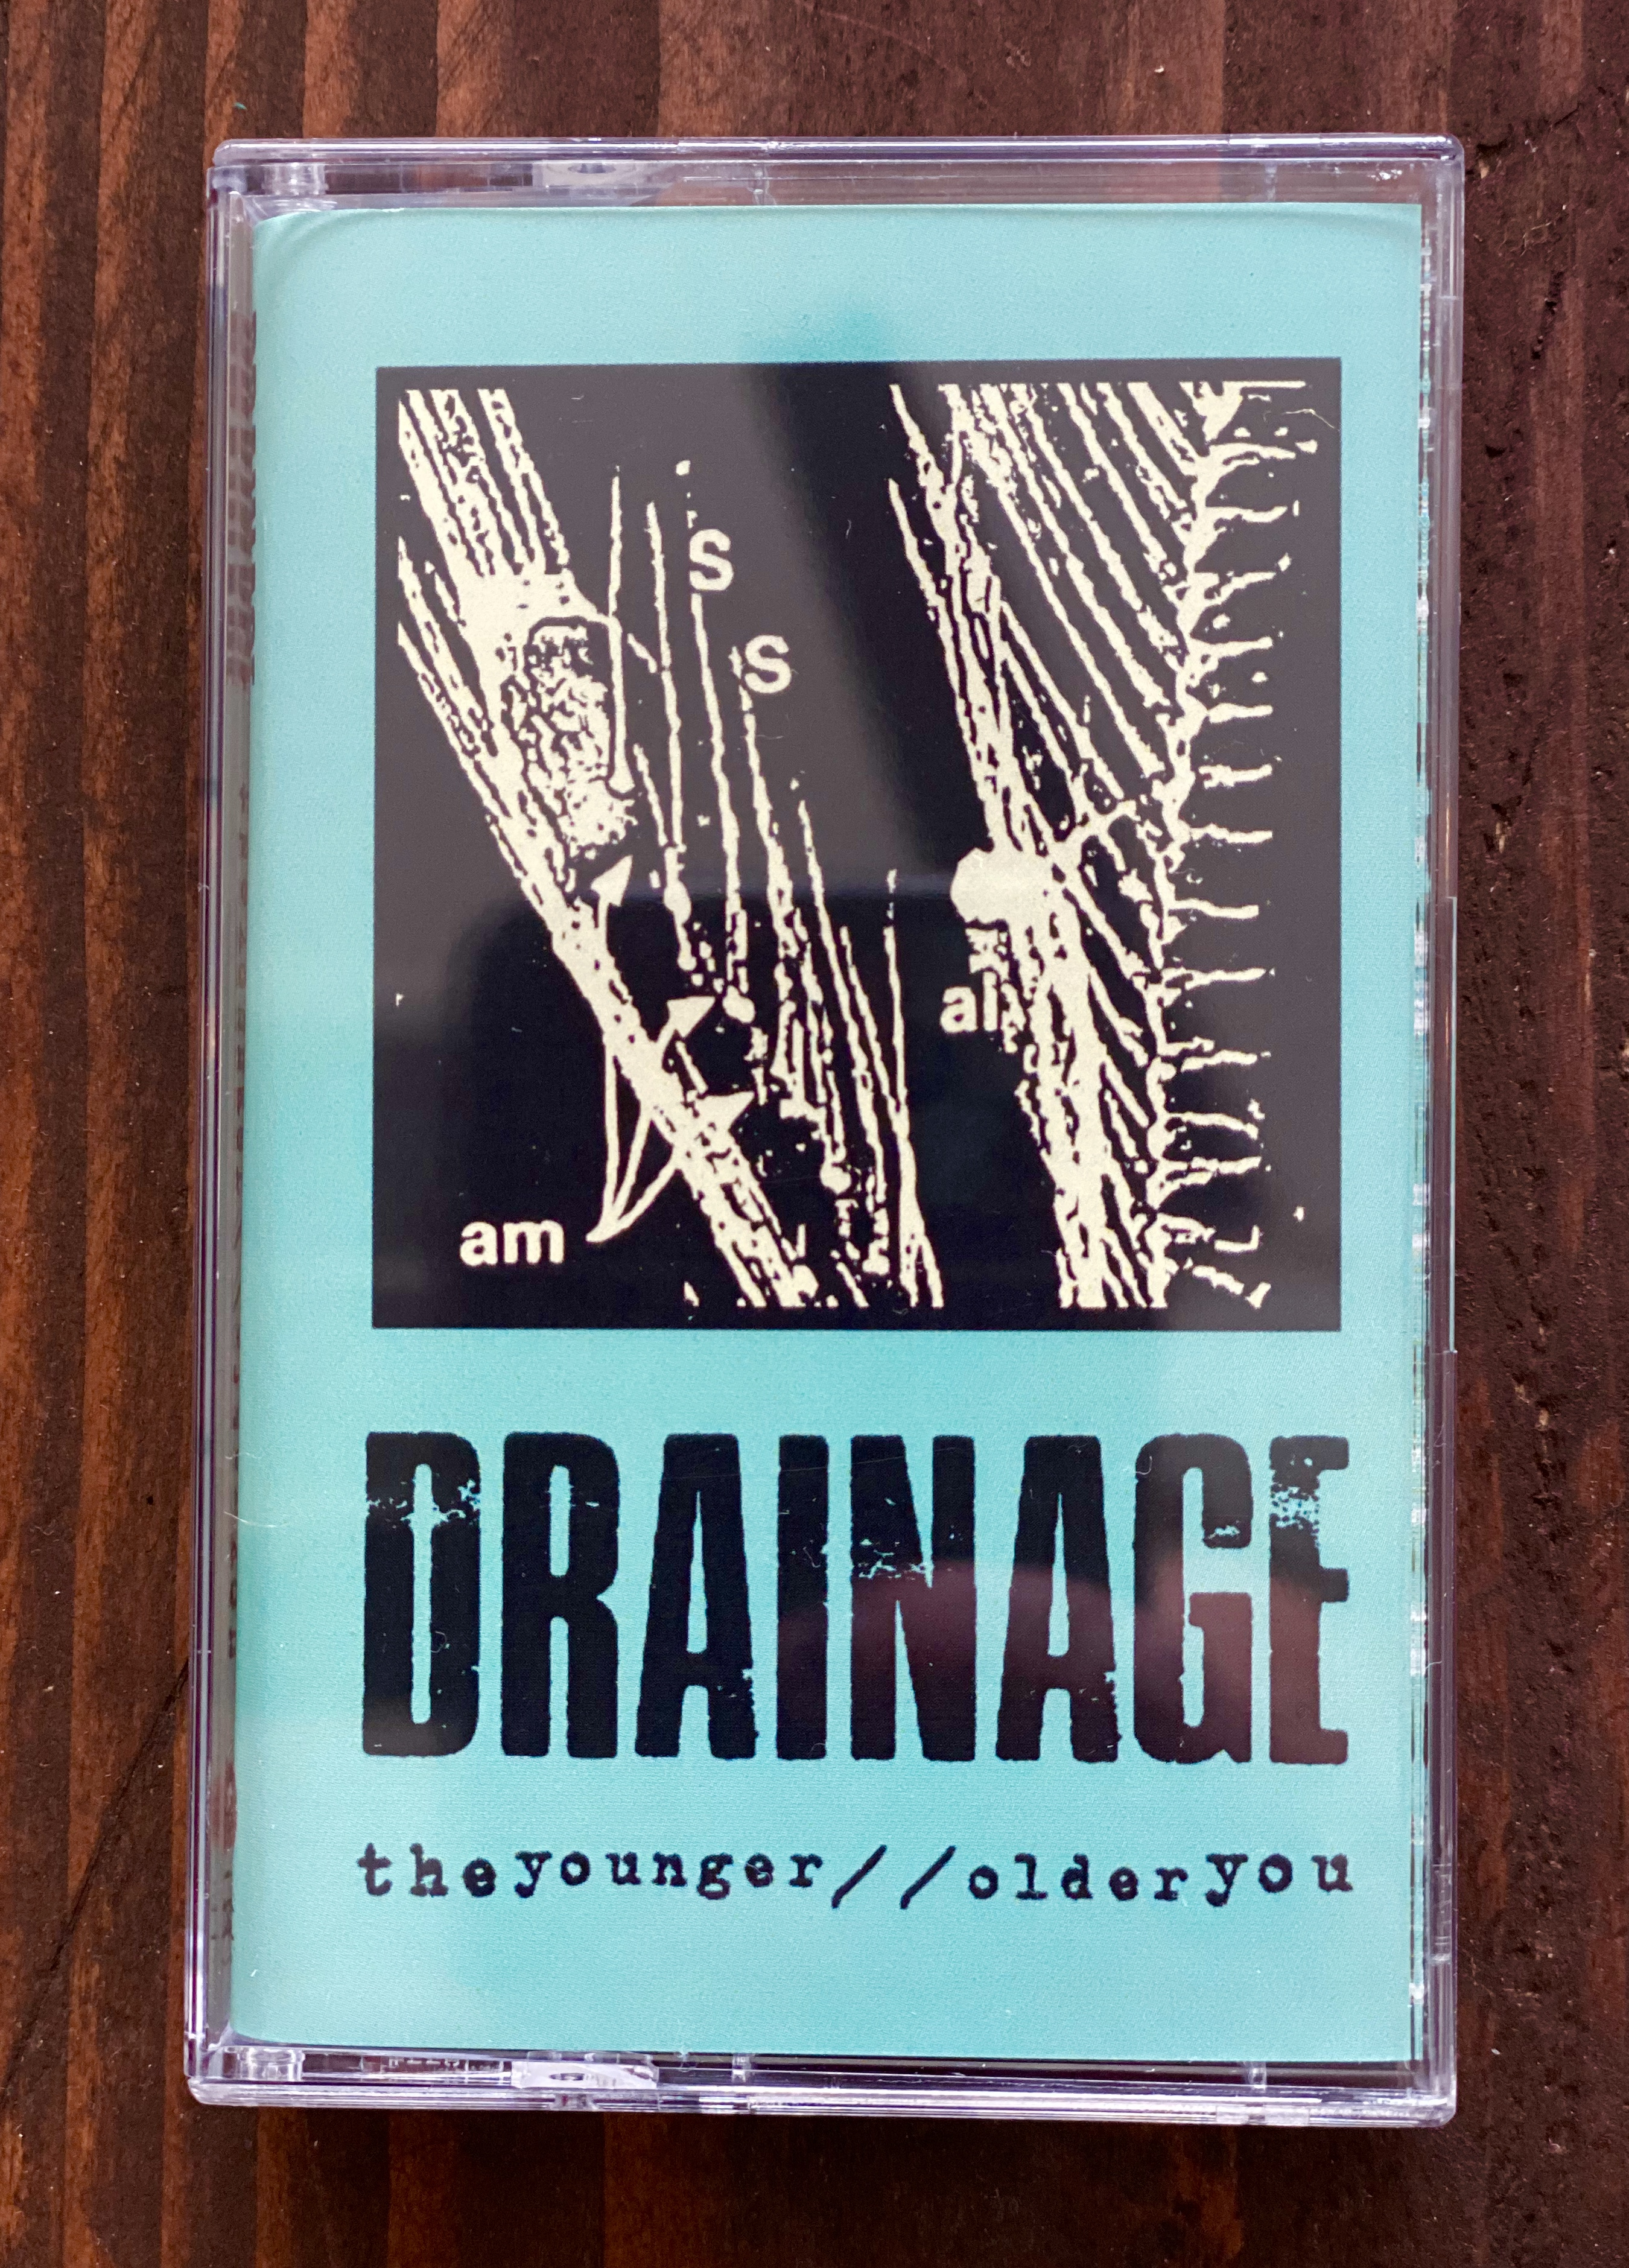 Drainage - The Younger // Older You cassette